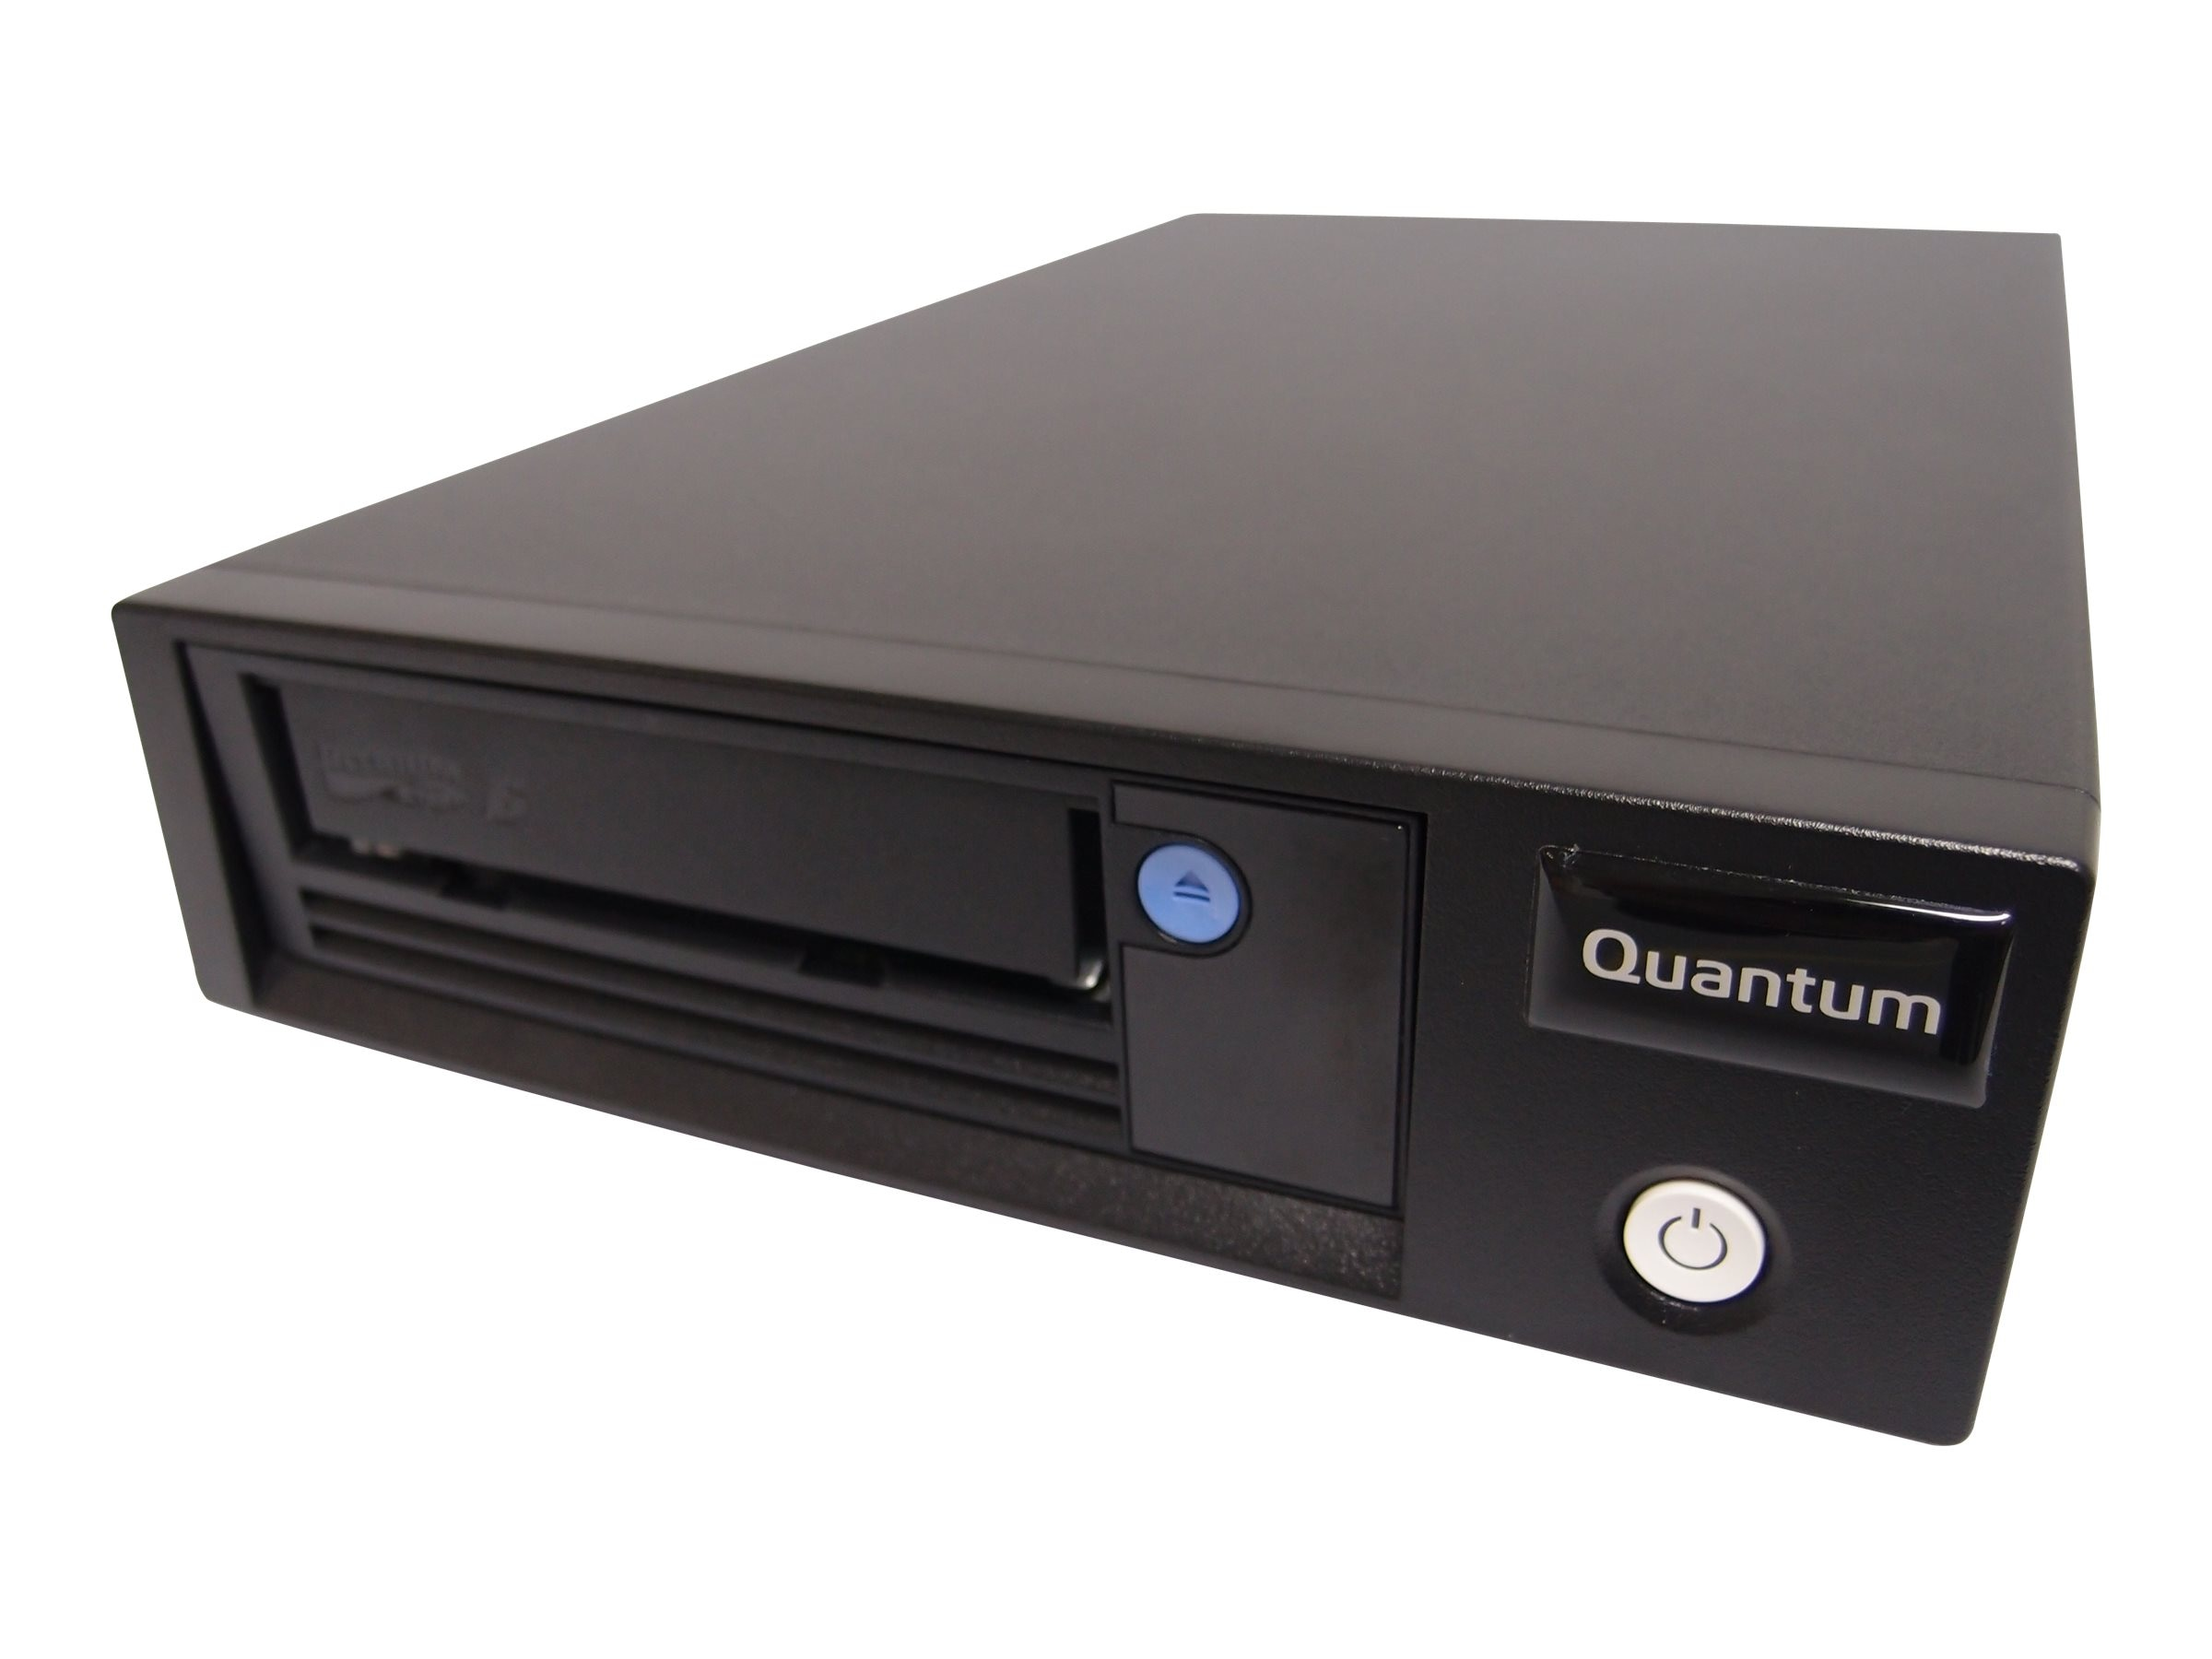 Quantum LTO-6 HH SAS 6Gb s Model C Tabletop Tape Drive - Black, TC-L62BN-AR-C